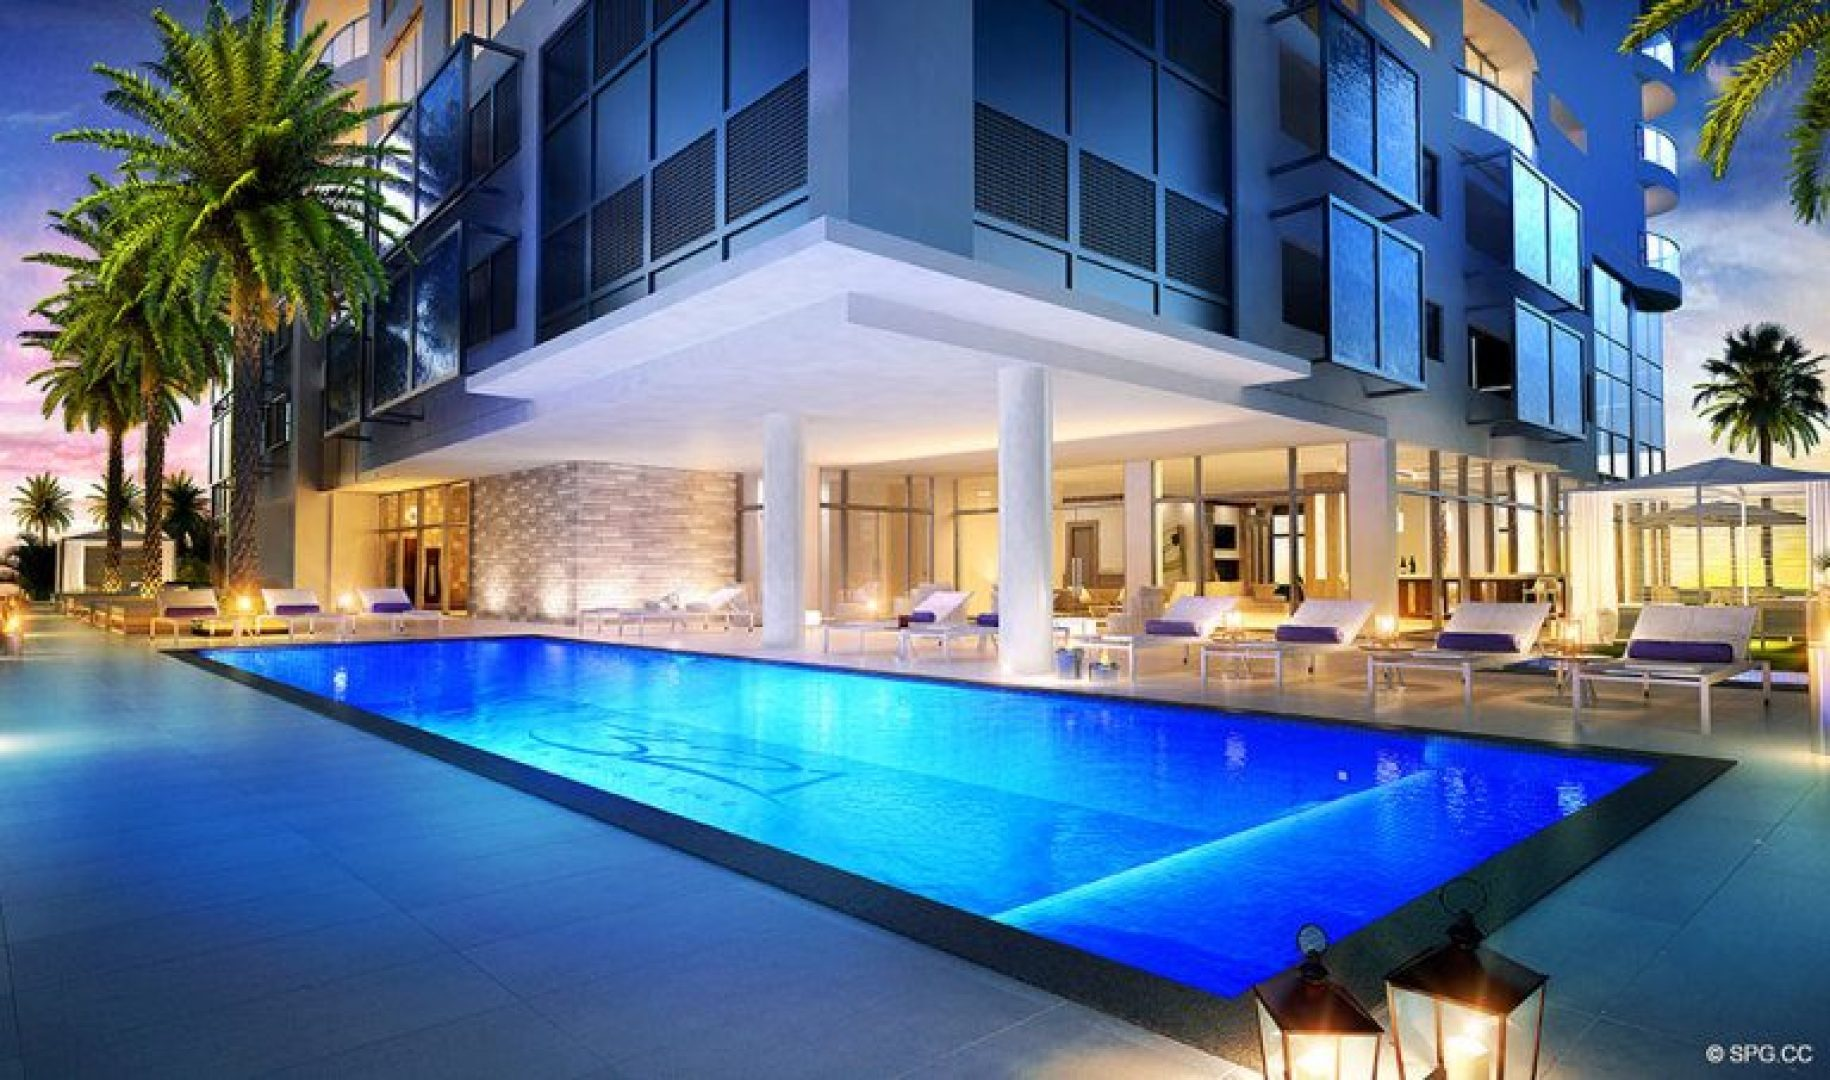 Poolside Evenings at 321 at Water's Edge, Luxury Waterfront Condos in Fort Lauderdale, Florida 33304